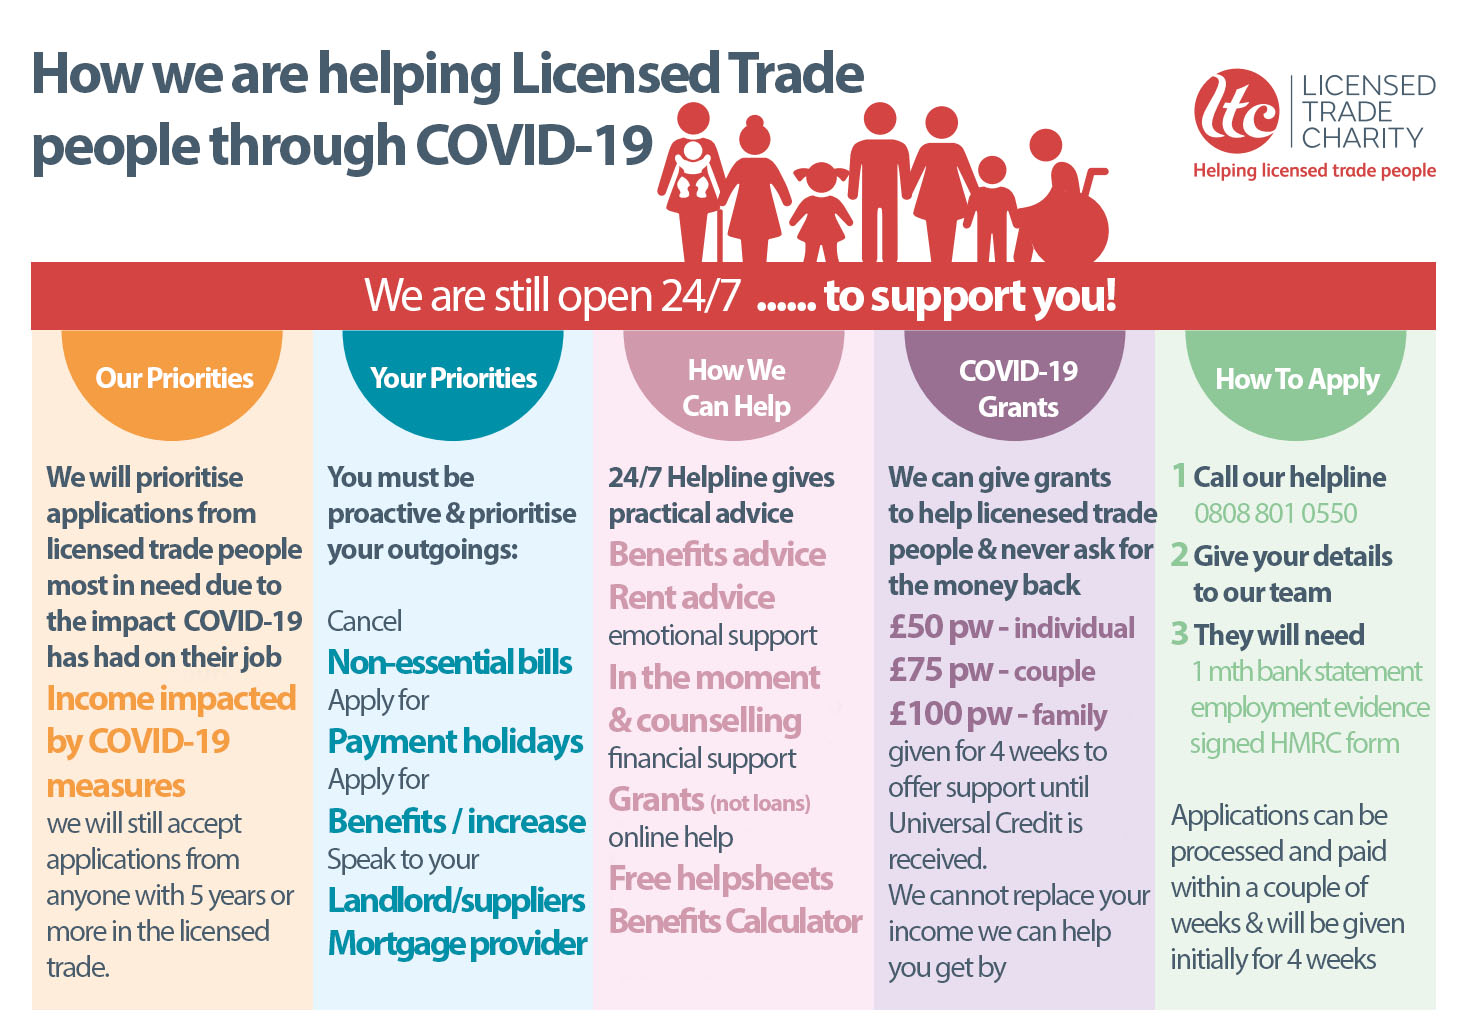 how the licensed trade charity are supporting the licensed trade through the covid-19 pandemic